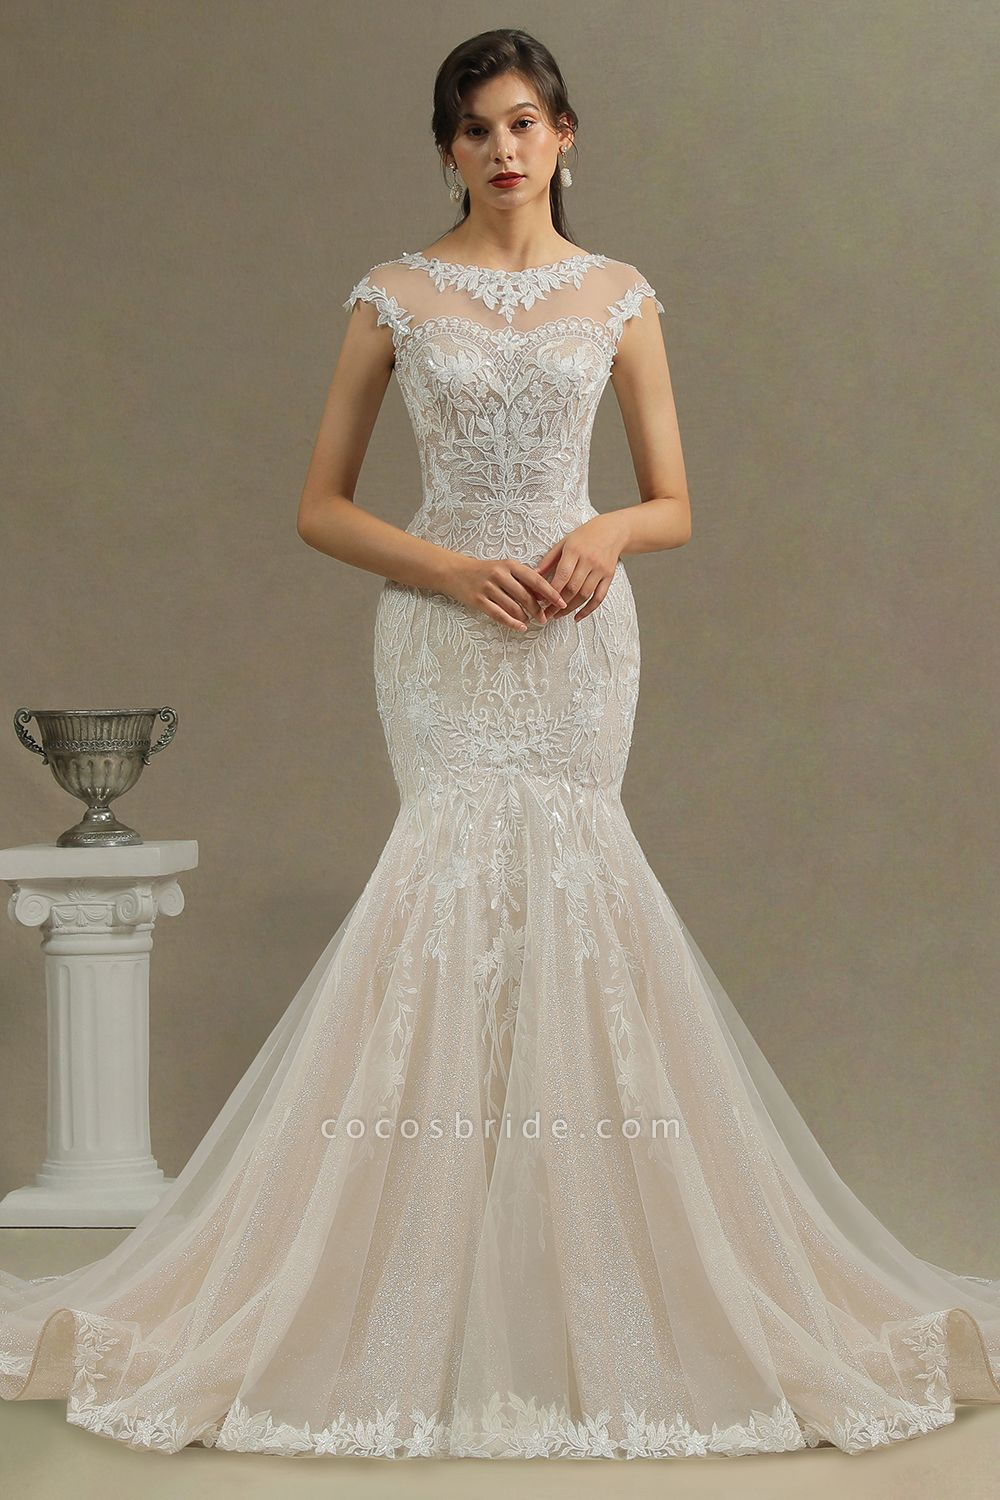 CPH234 Gorgeous Mermaid Lace Cap Sleeve Sheer Tulle Neckline Wedding Dress